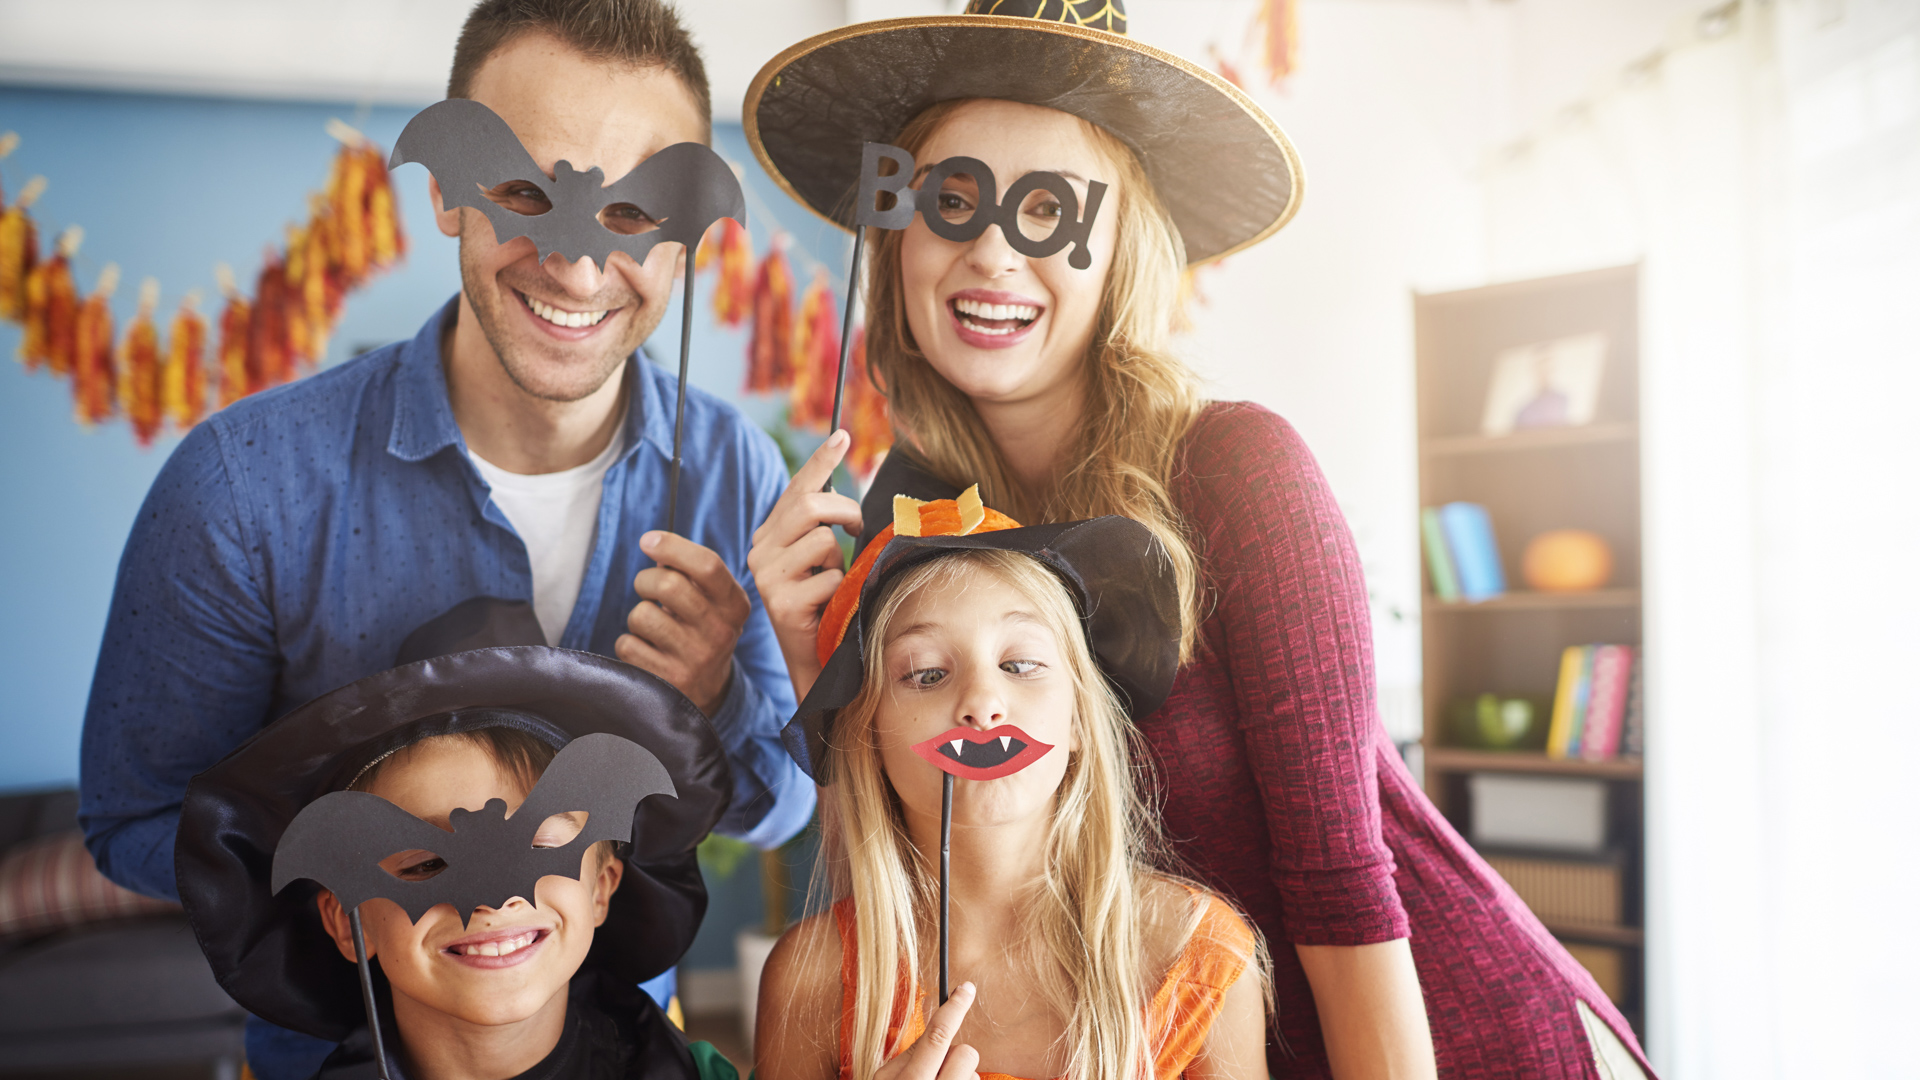 10 Money-Themed Costumes To Add Some Bling to Your Covid-19 Halloween